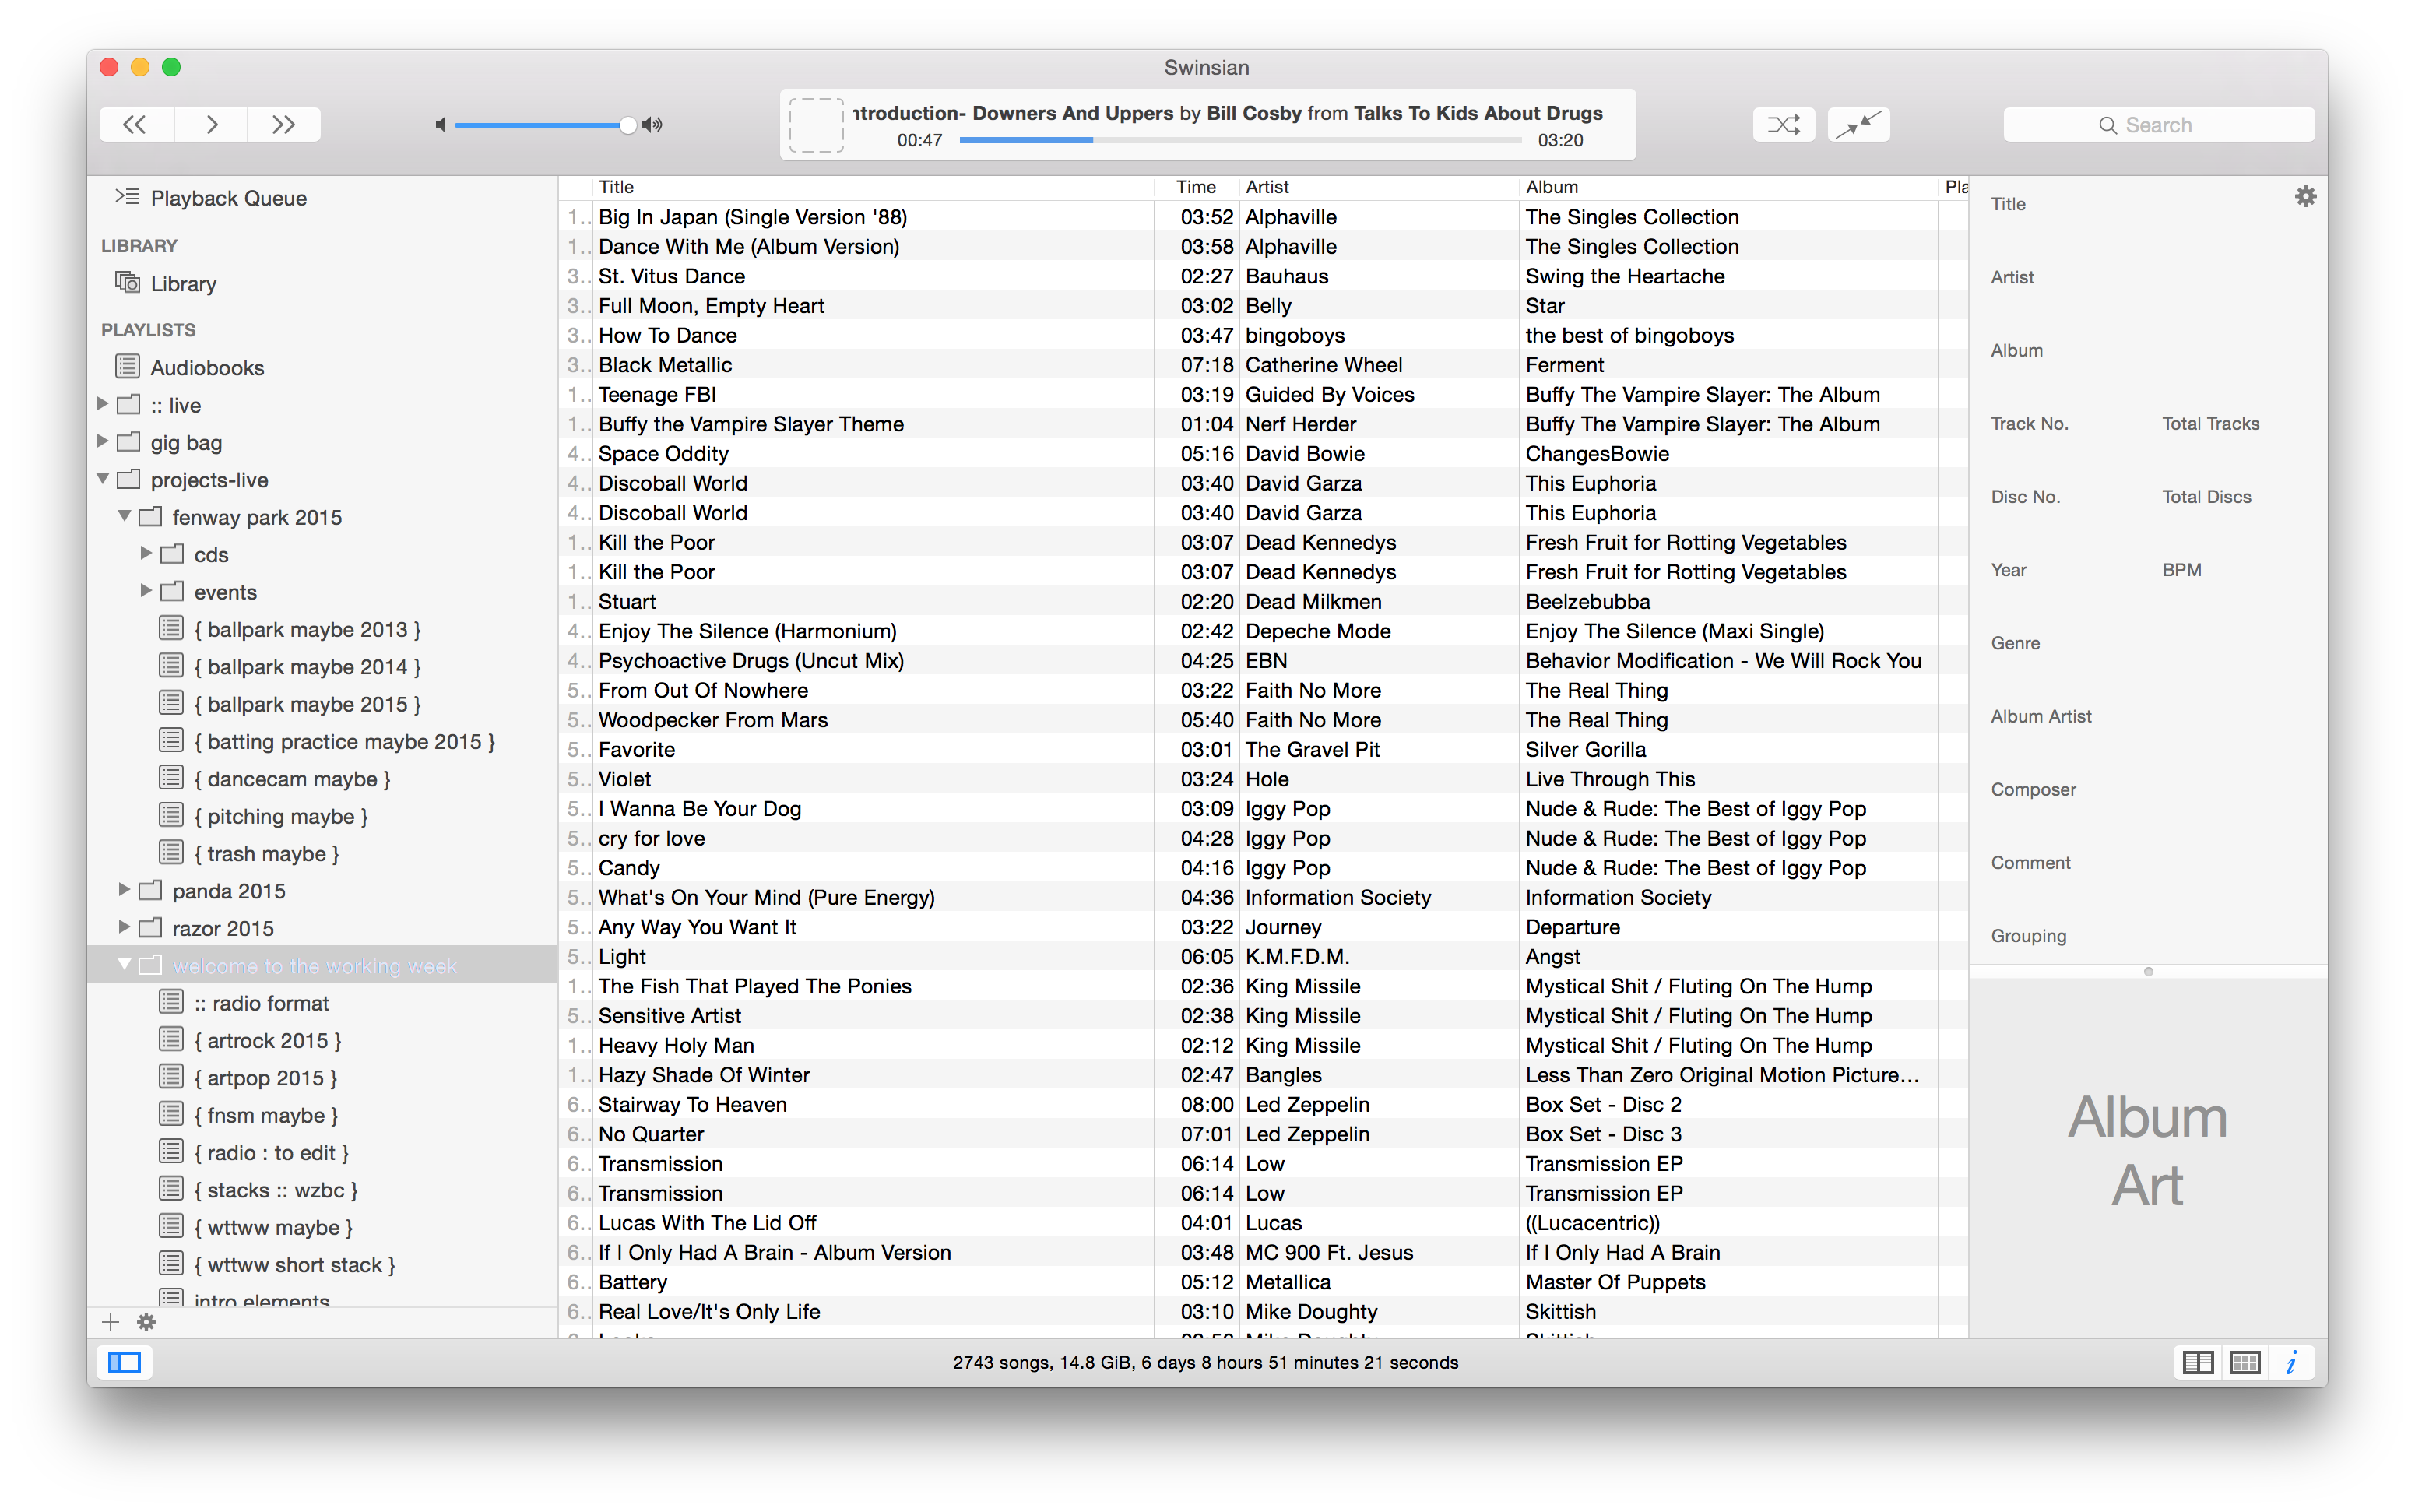 I Deleted My Entire iTunes Library And You Can Too - TJ